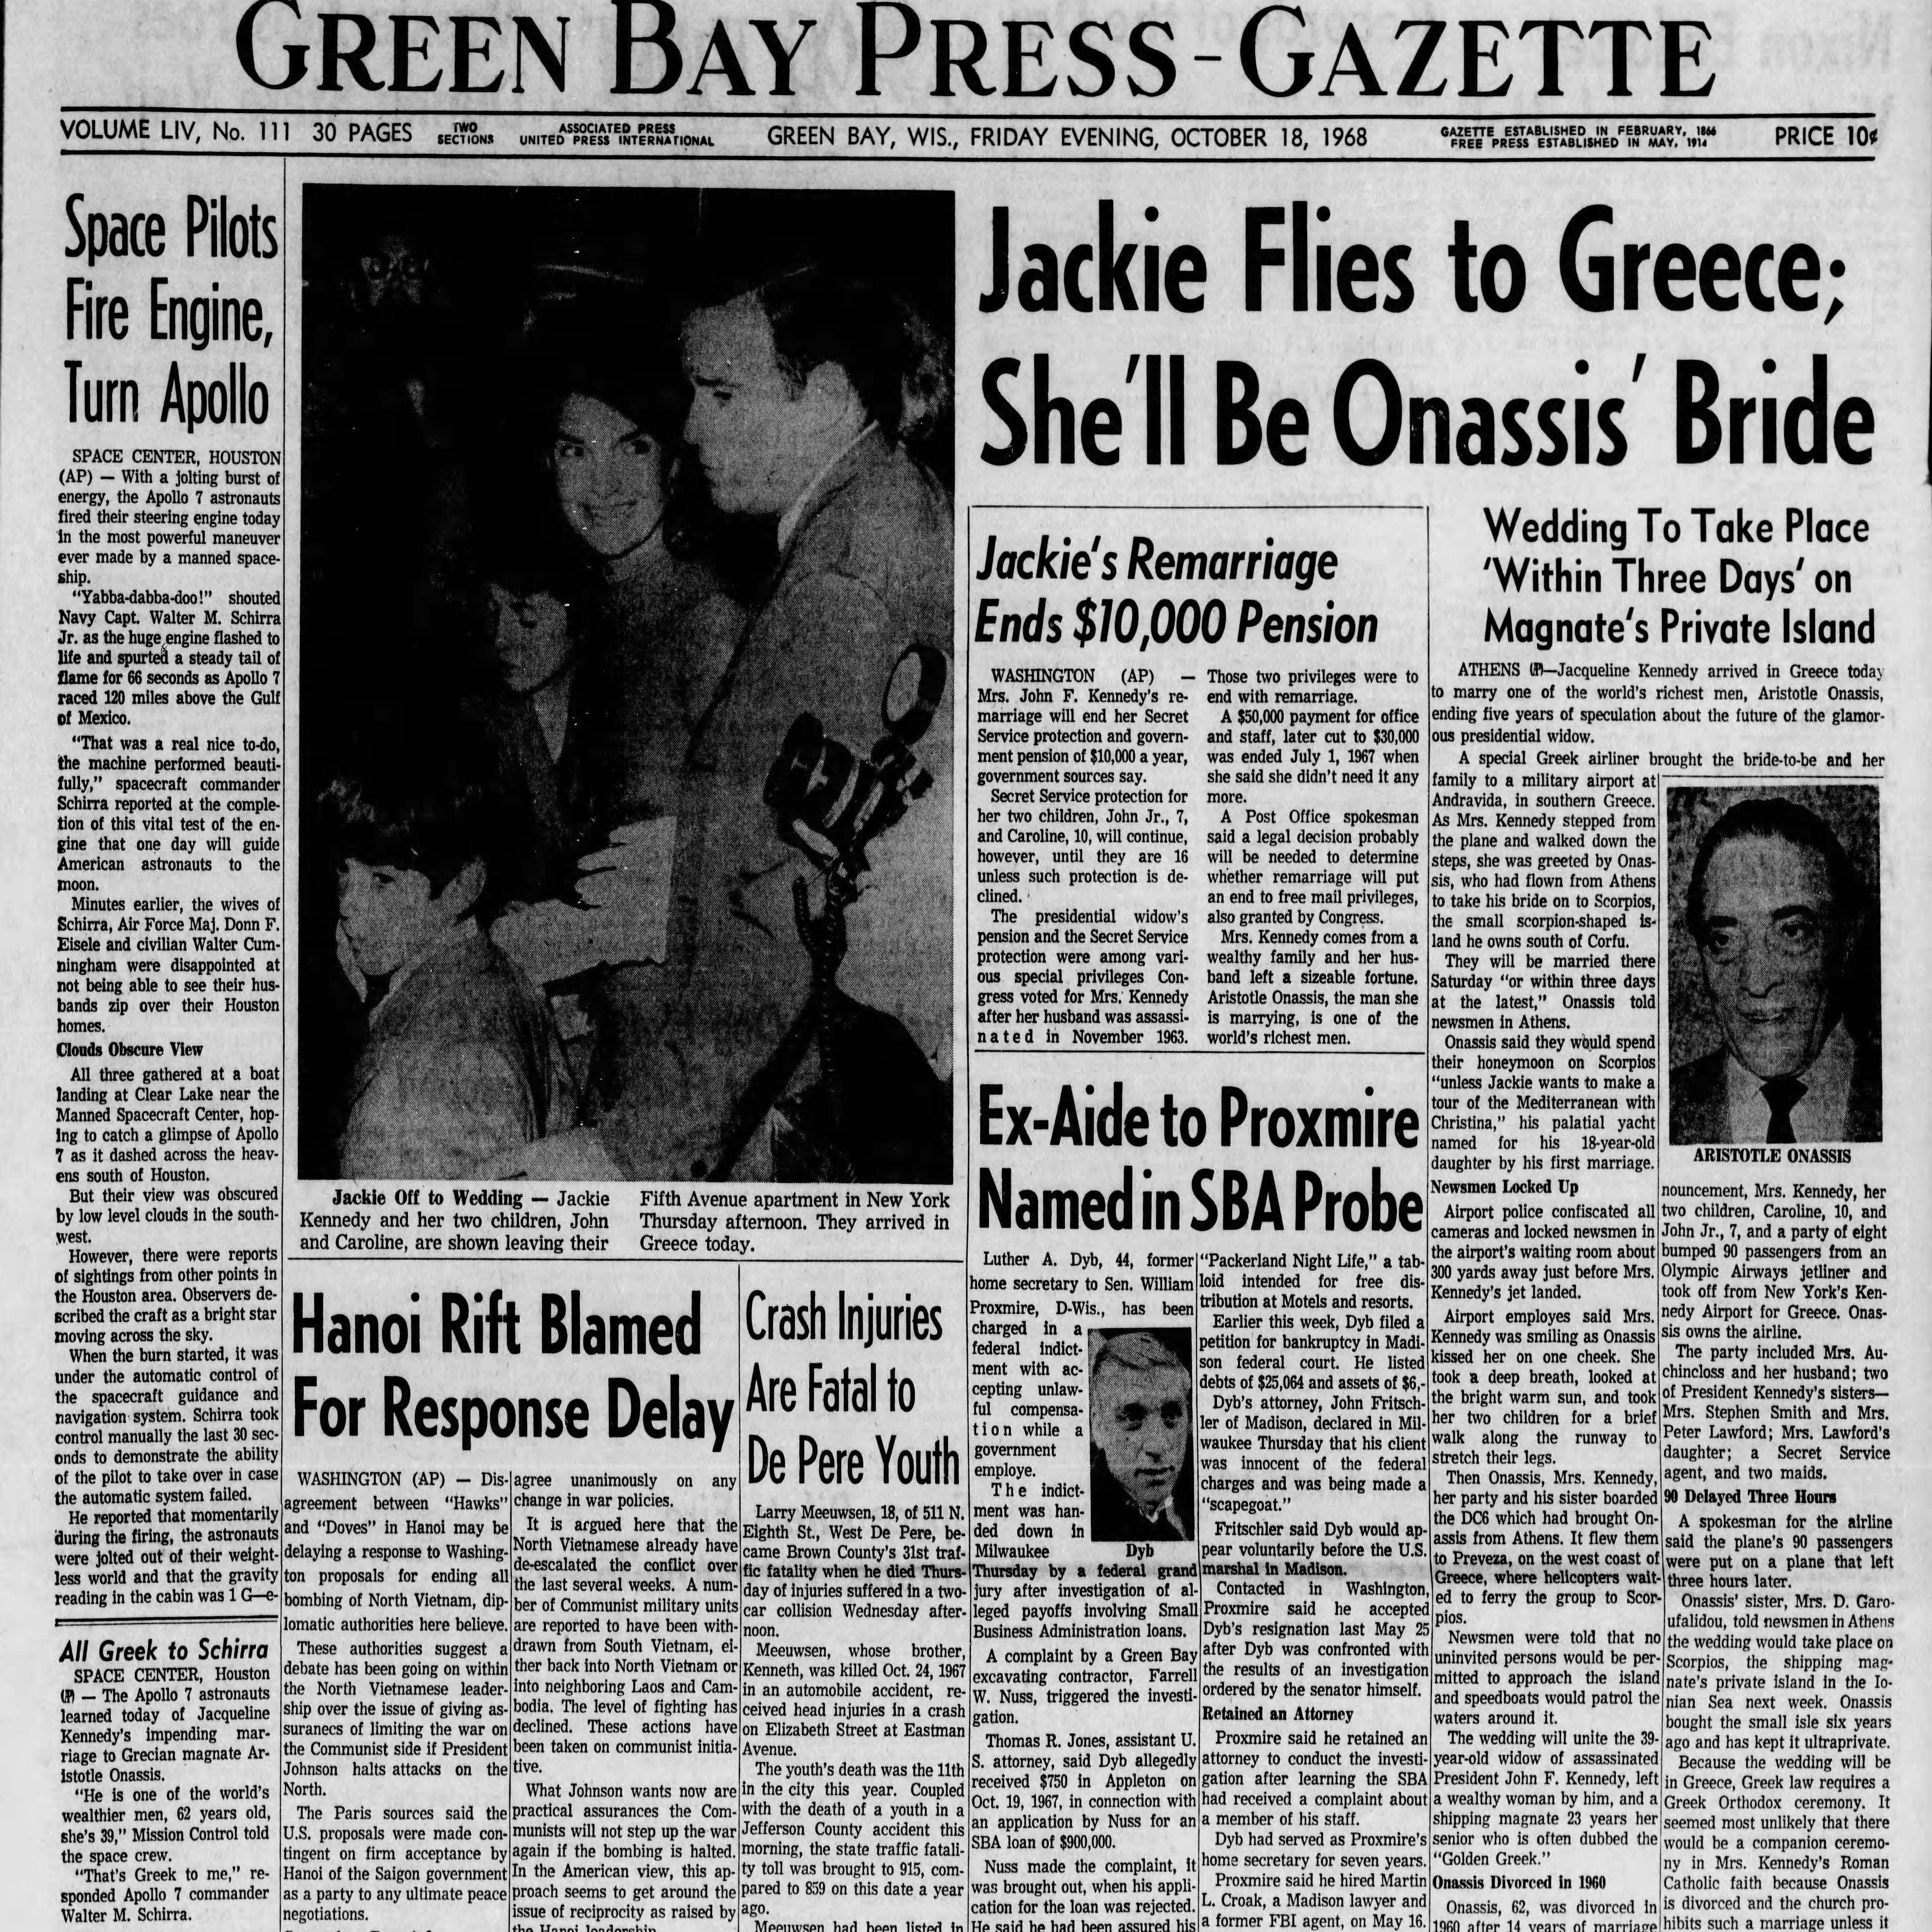 Green Bay Press-Gazette today in history: Oct. 18